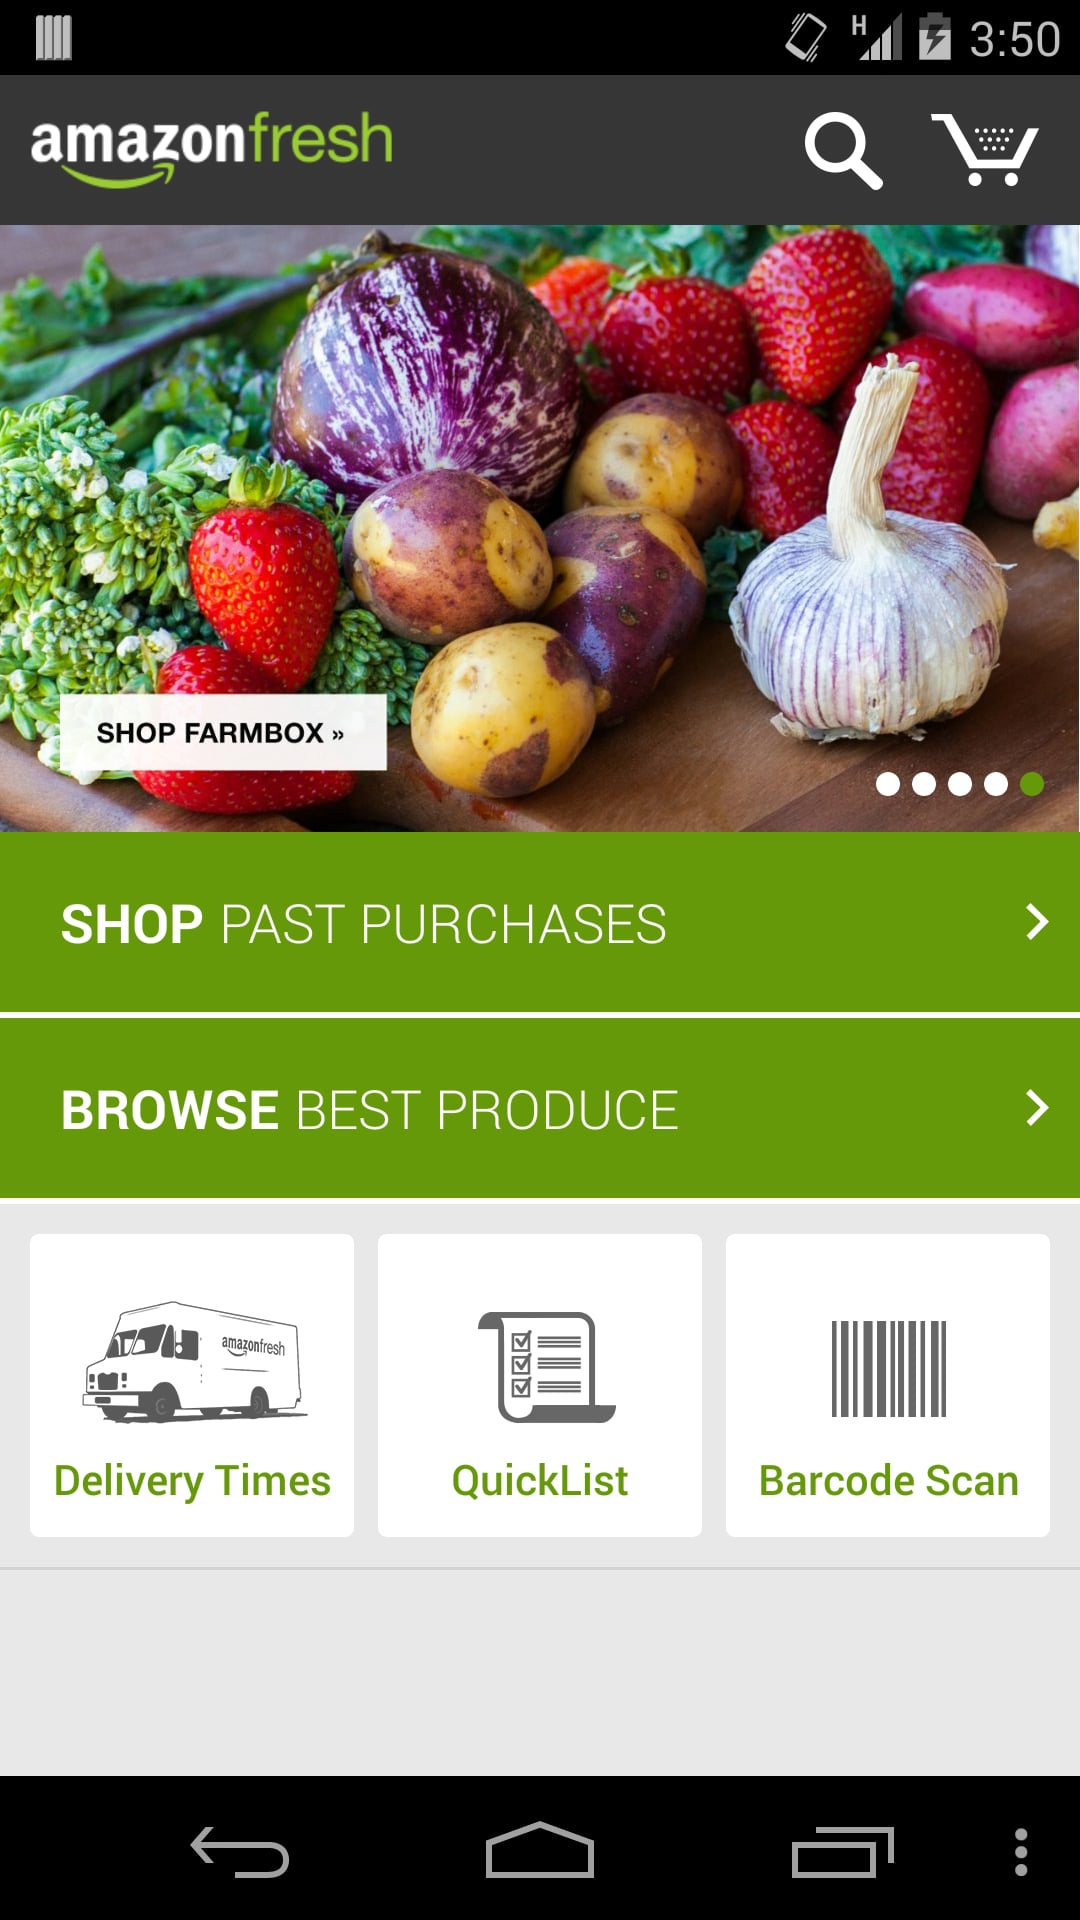 Amazon Fresh has over 500,000 products.